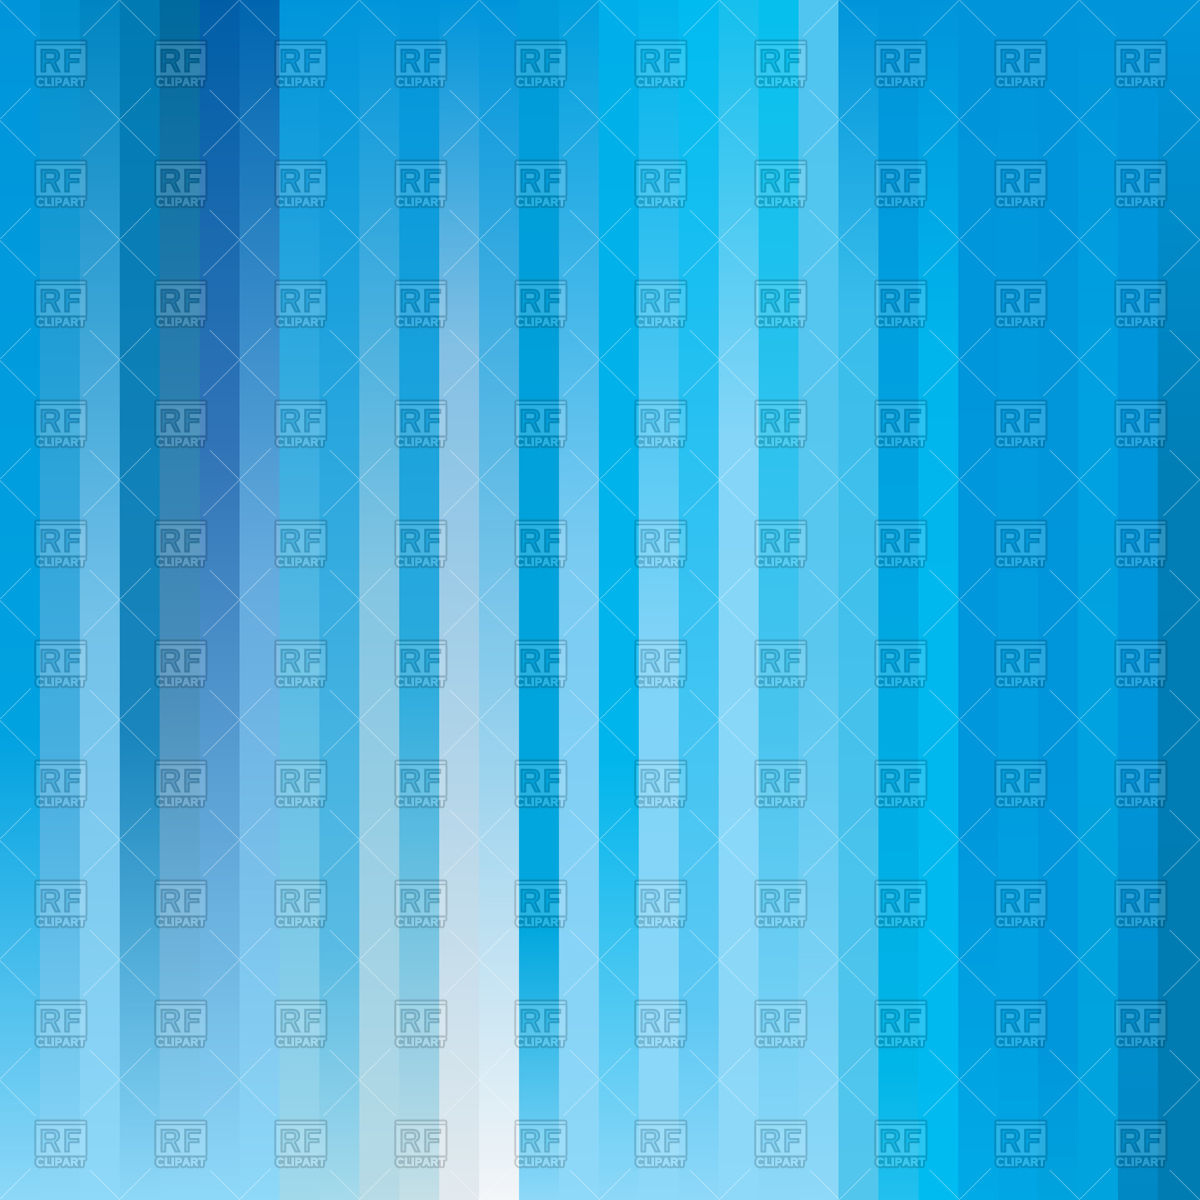 Gradient clipart #8, Download drawings